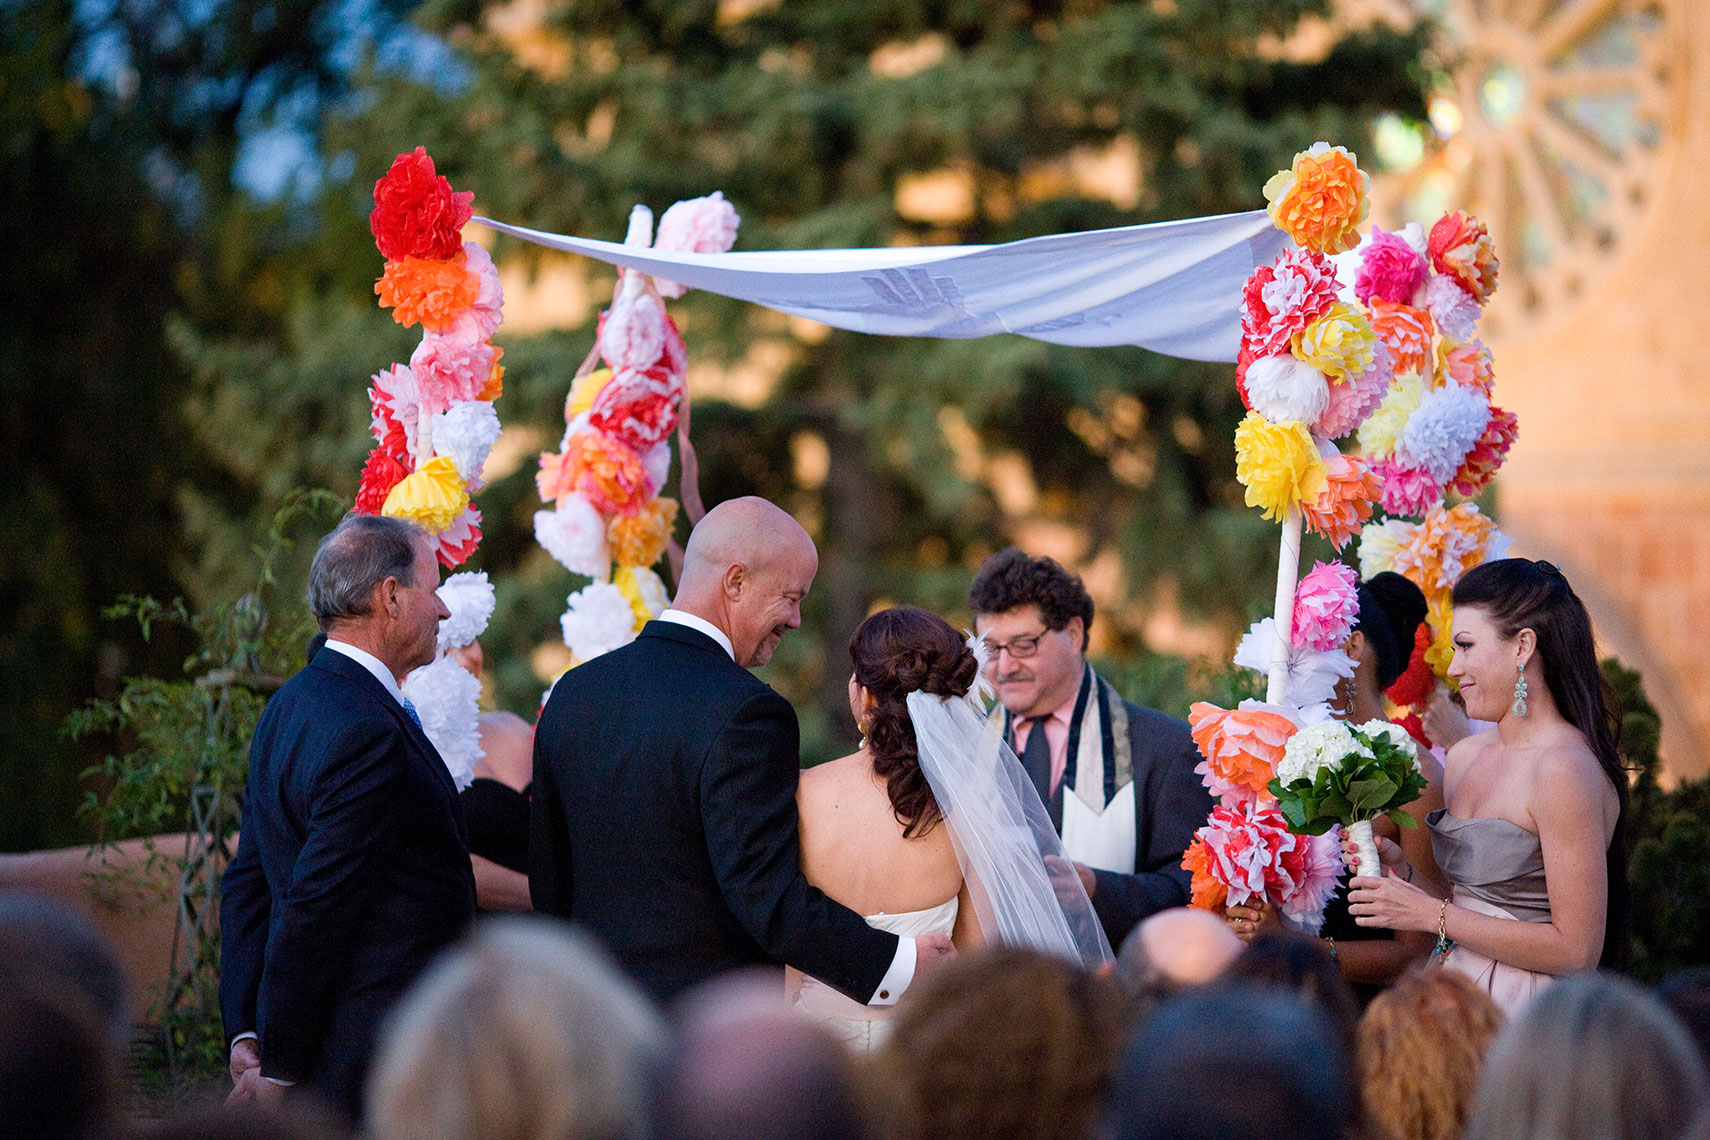 Jewish wedding ceremony on The La Fonda Balcony in Santa Fe